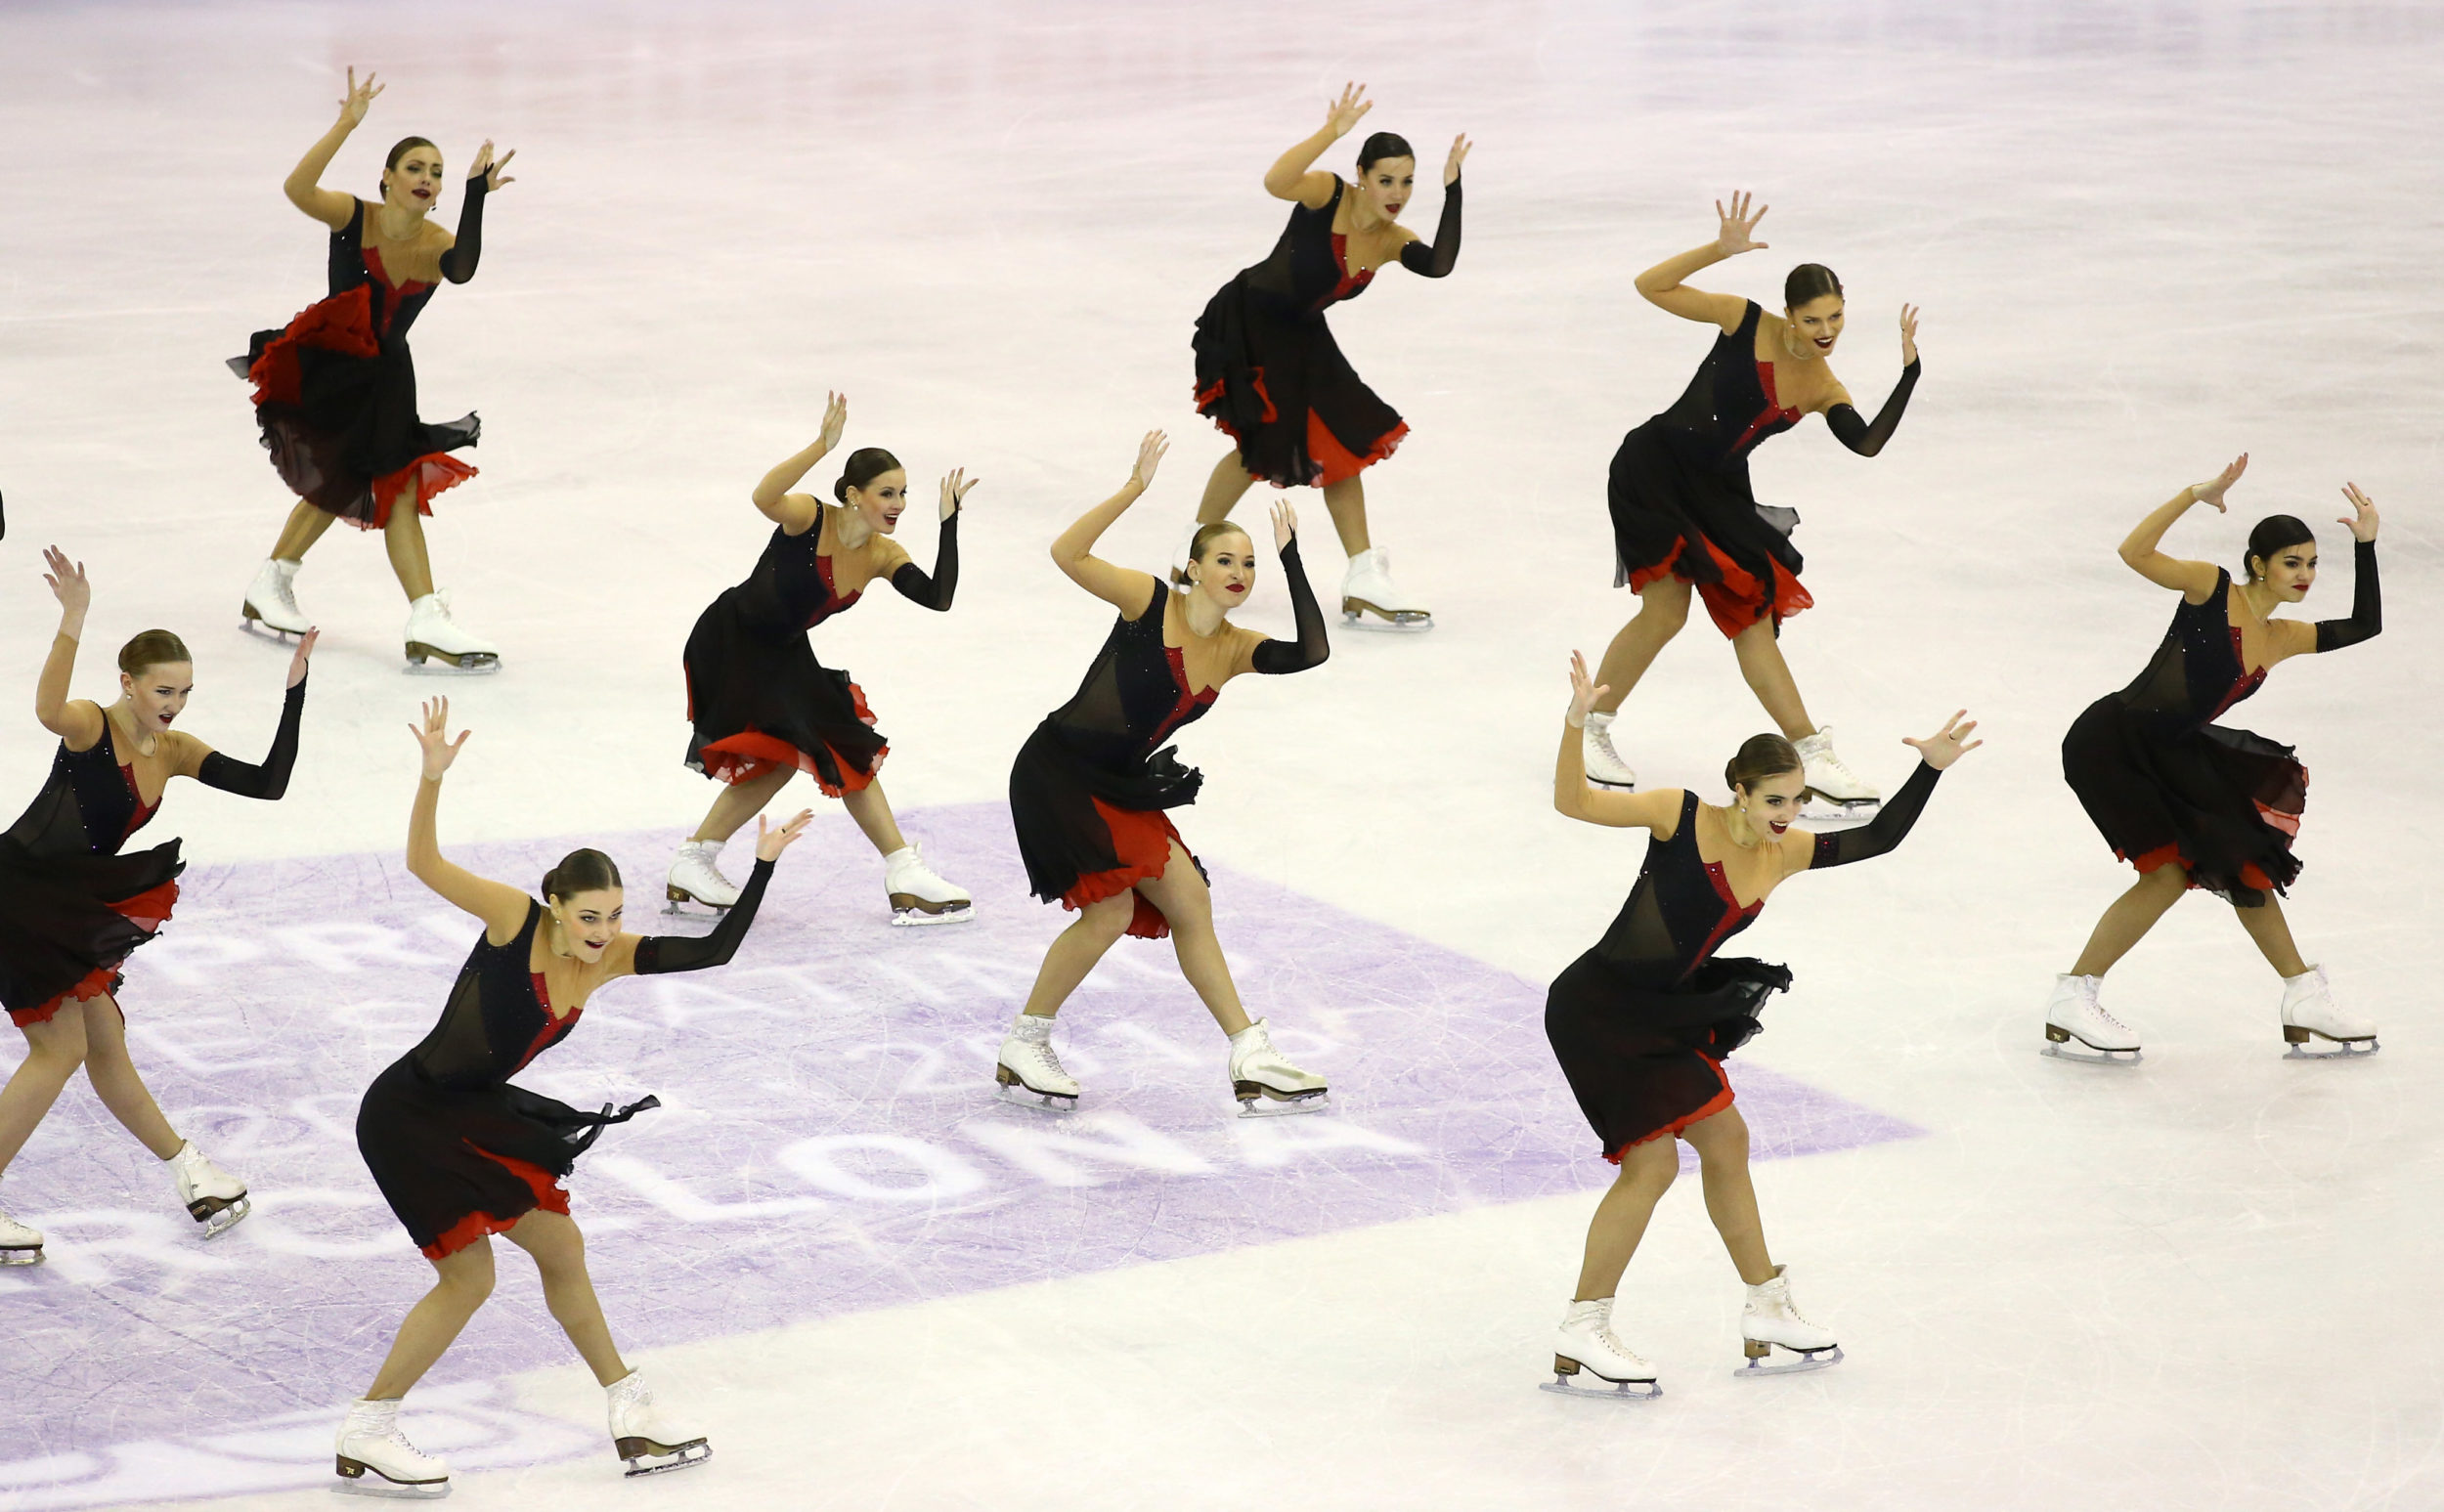 Is synchronized skating an Olympic sport? Not yet, but it could be in 2022